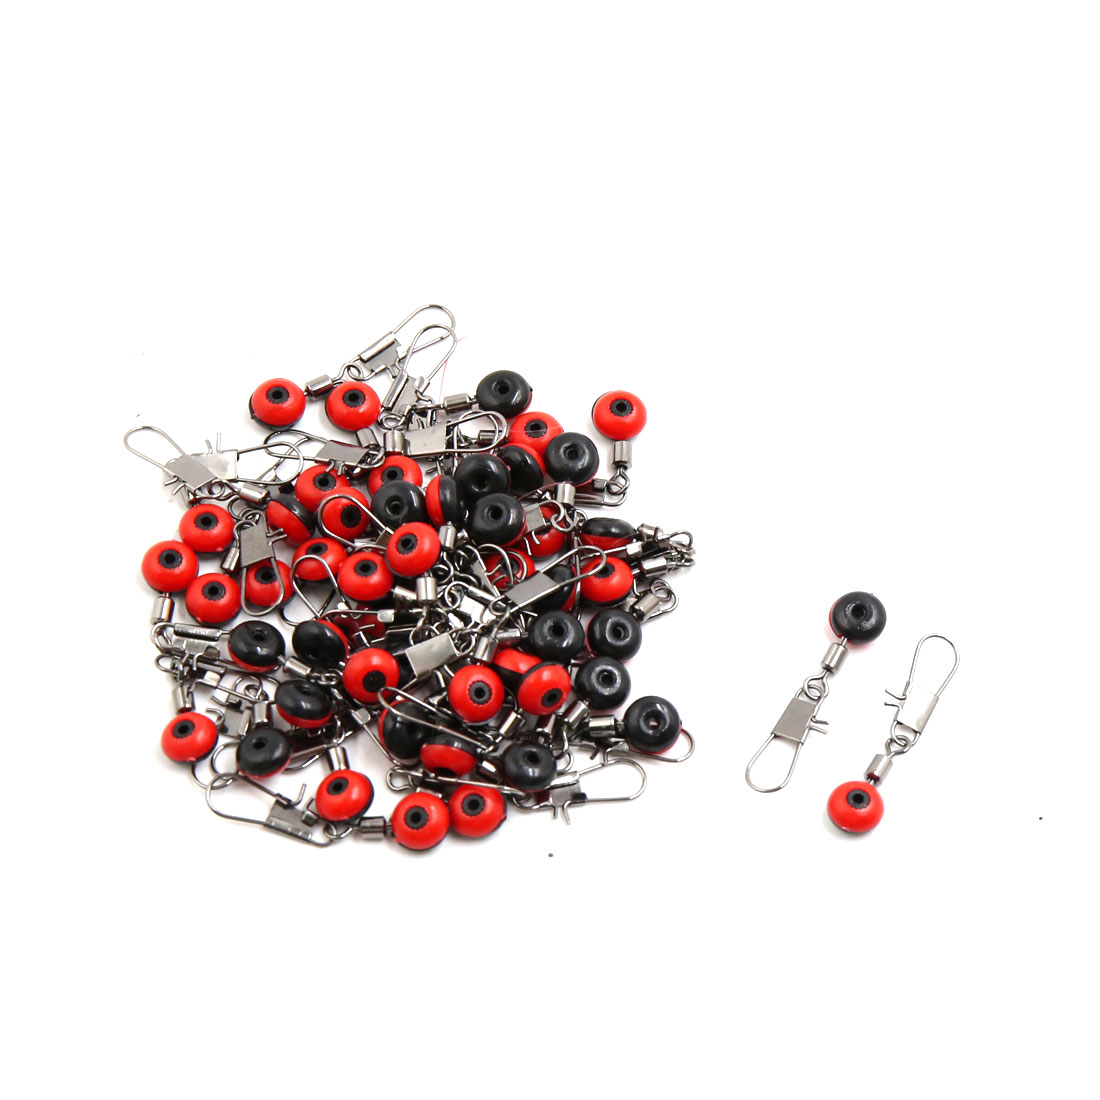 50pcs Red Beans Design Car Interior Keychain Hanging Ornament Decoration